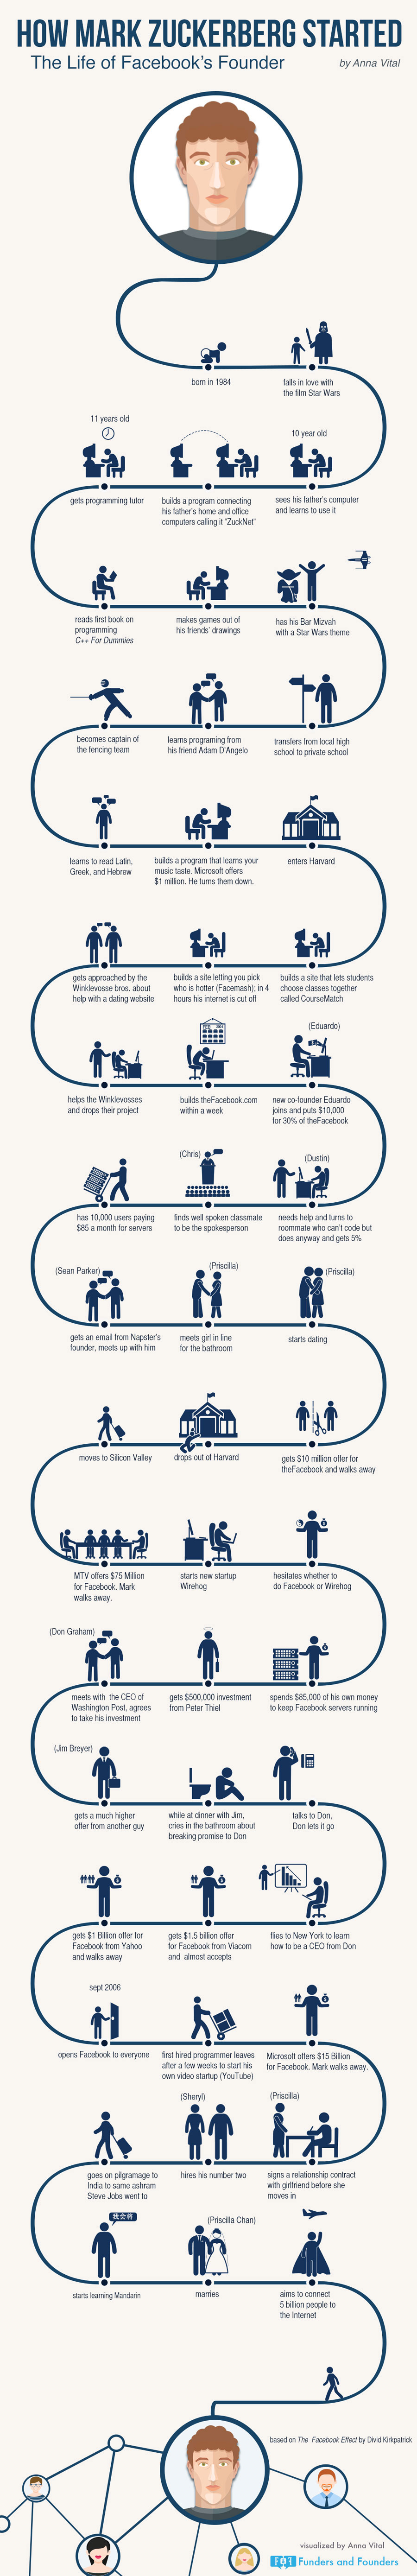 http://fundersandfounders.com/wp-content/uploads/2014/11/how-mark-zuckerberg-started-infographic.jpg